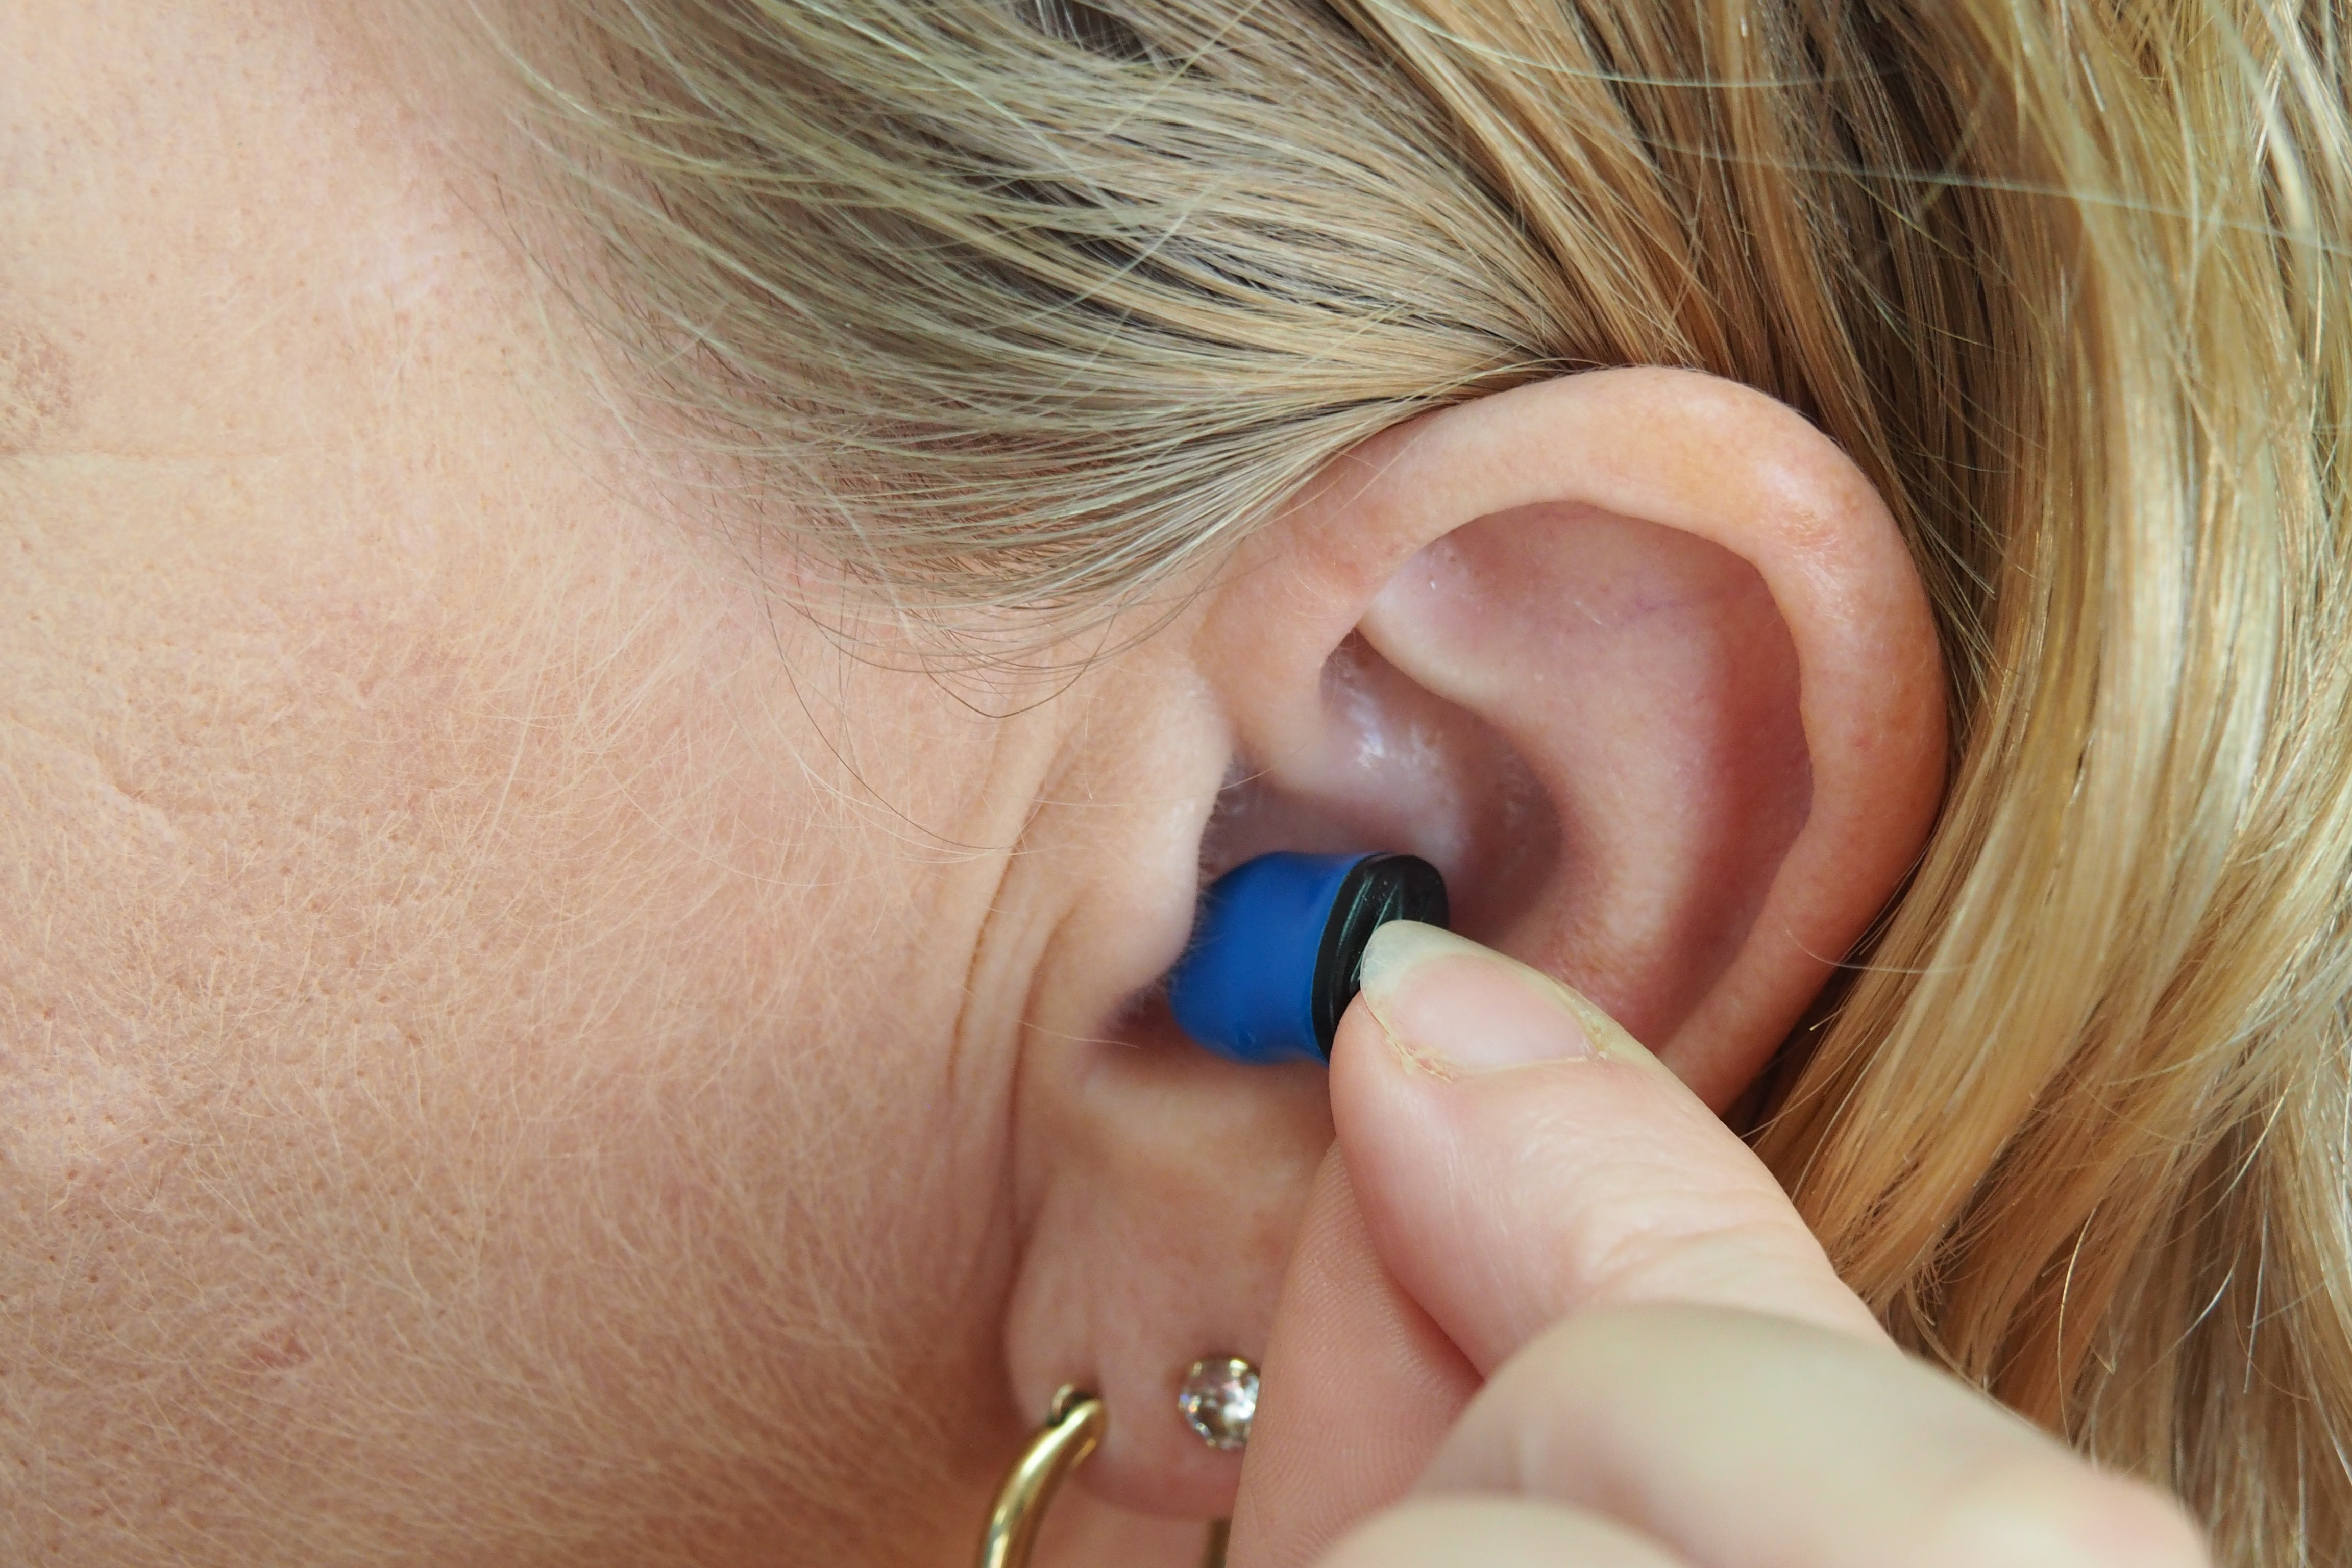 This Is How Easy It Is To Develop Permanent Hearing Loss